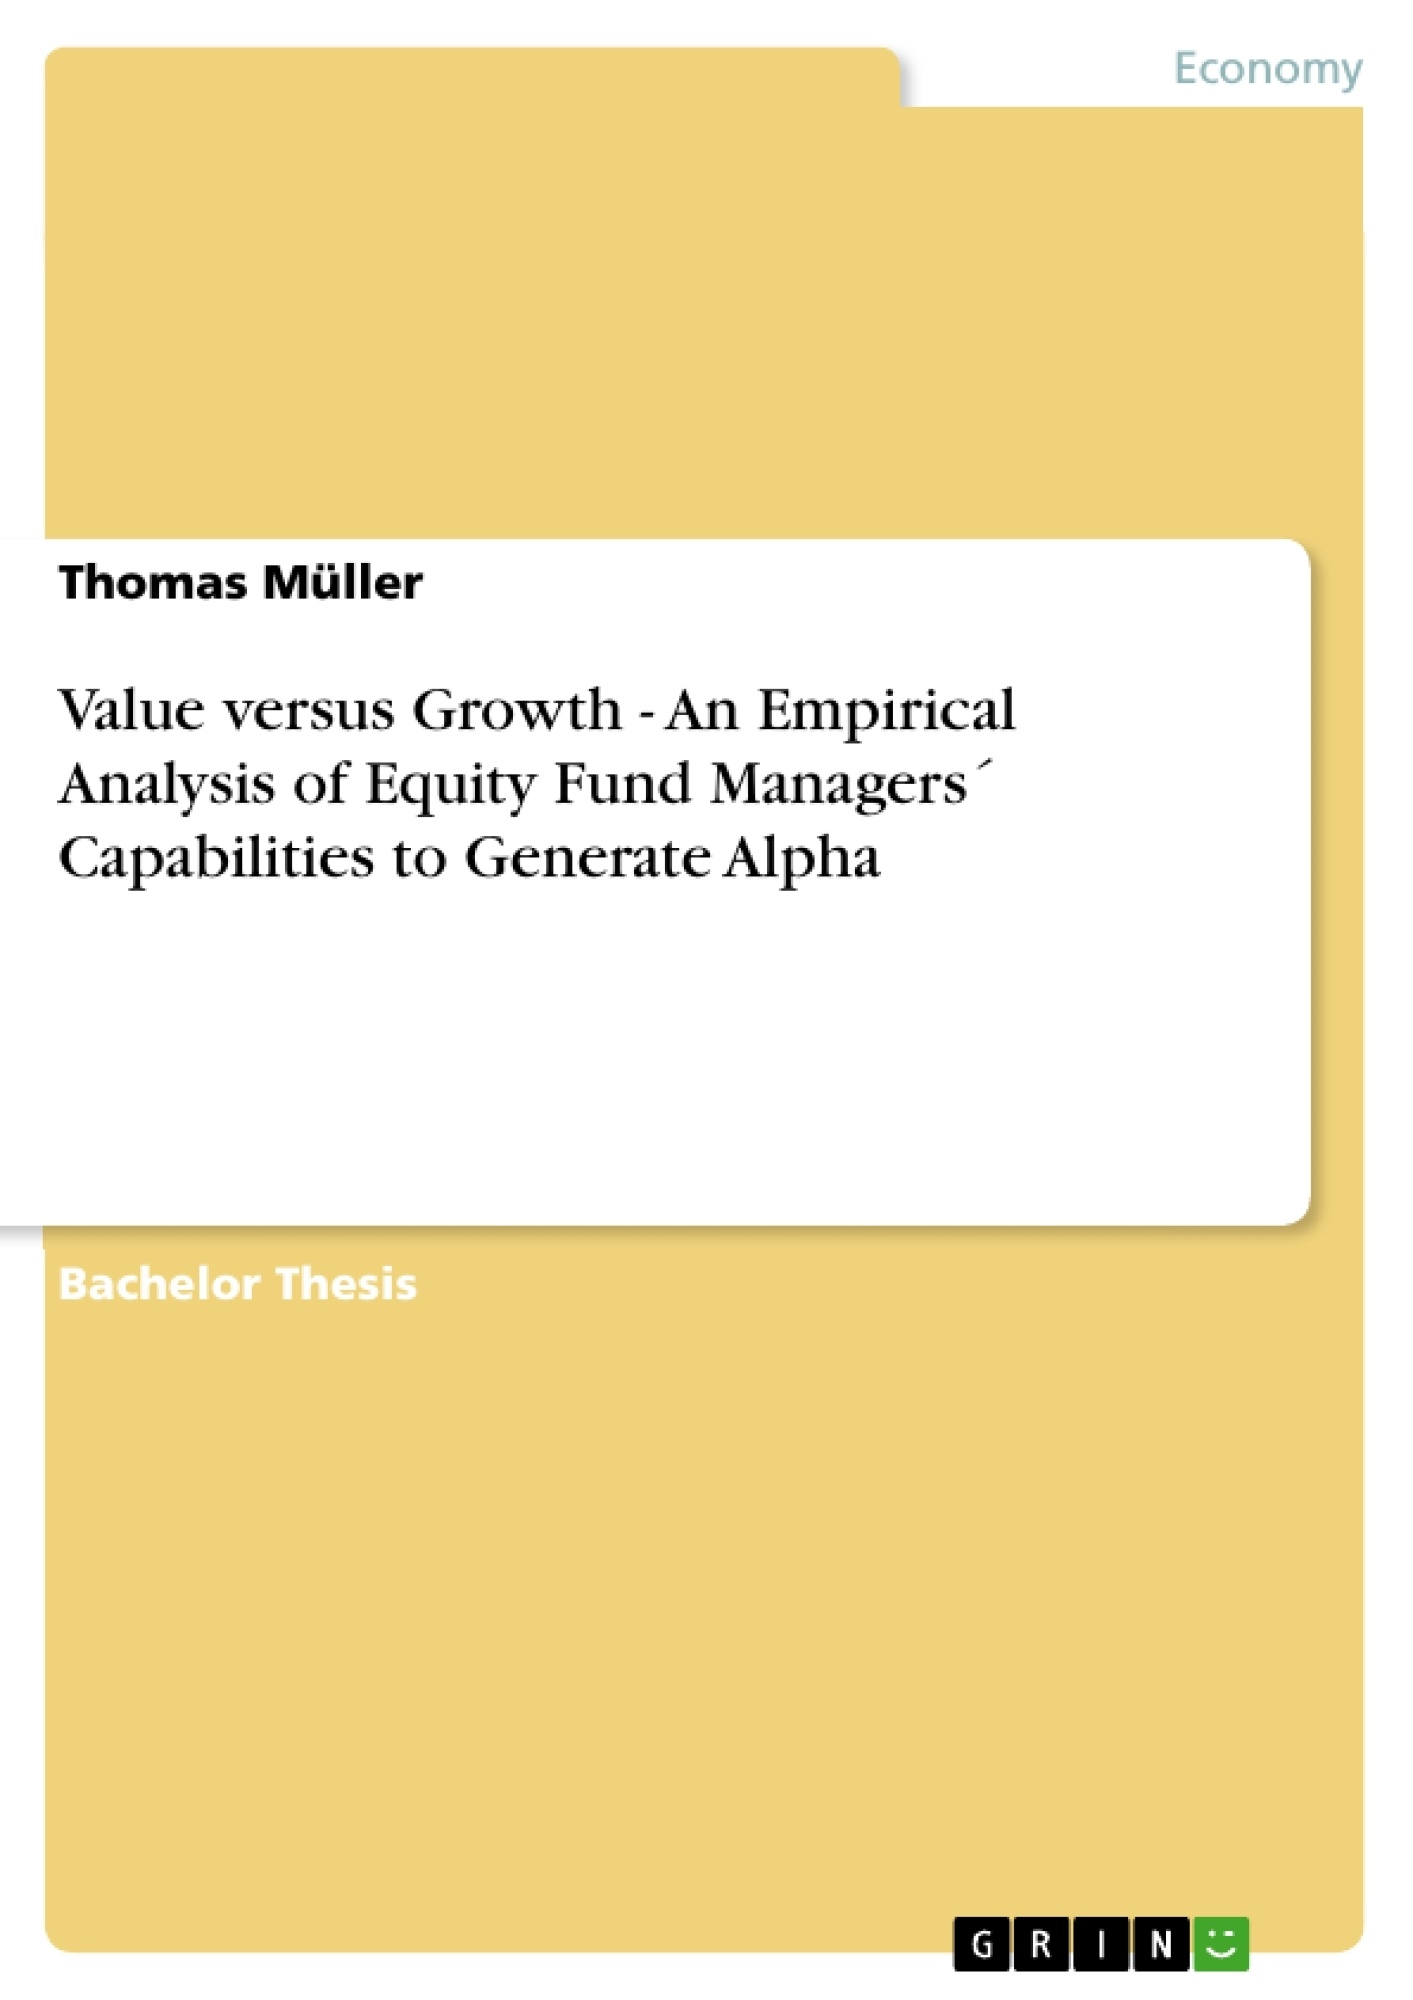 Title: Value versus Growth - An Empirical Analysis of Equity Fund Managers´ Capabilities to Generate Alpha